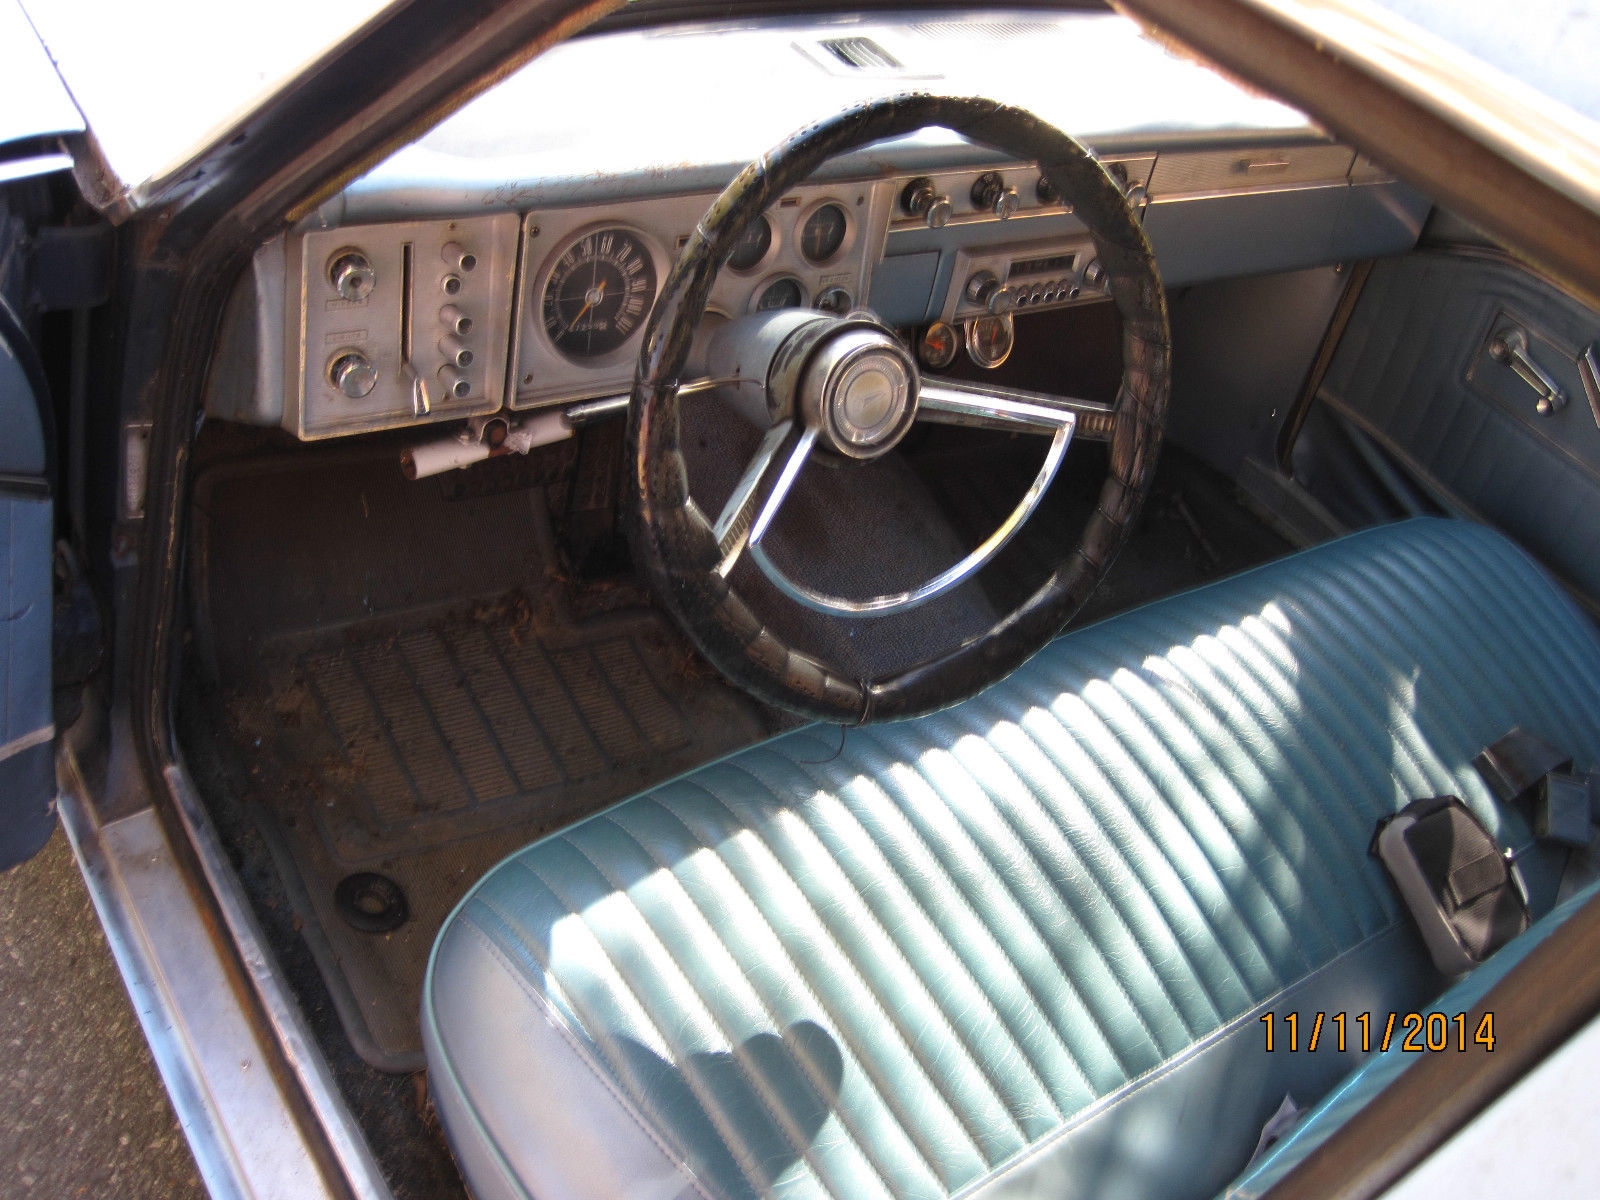 1964 Plymouth Valiant automatic with push-button